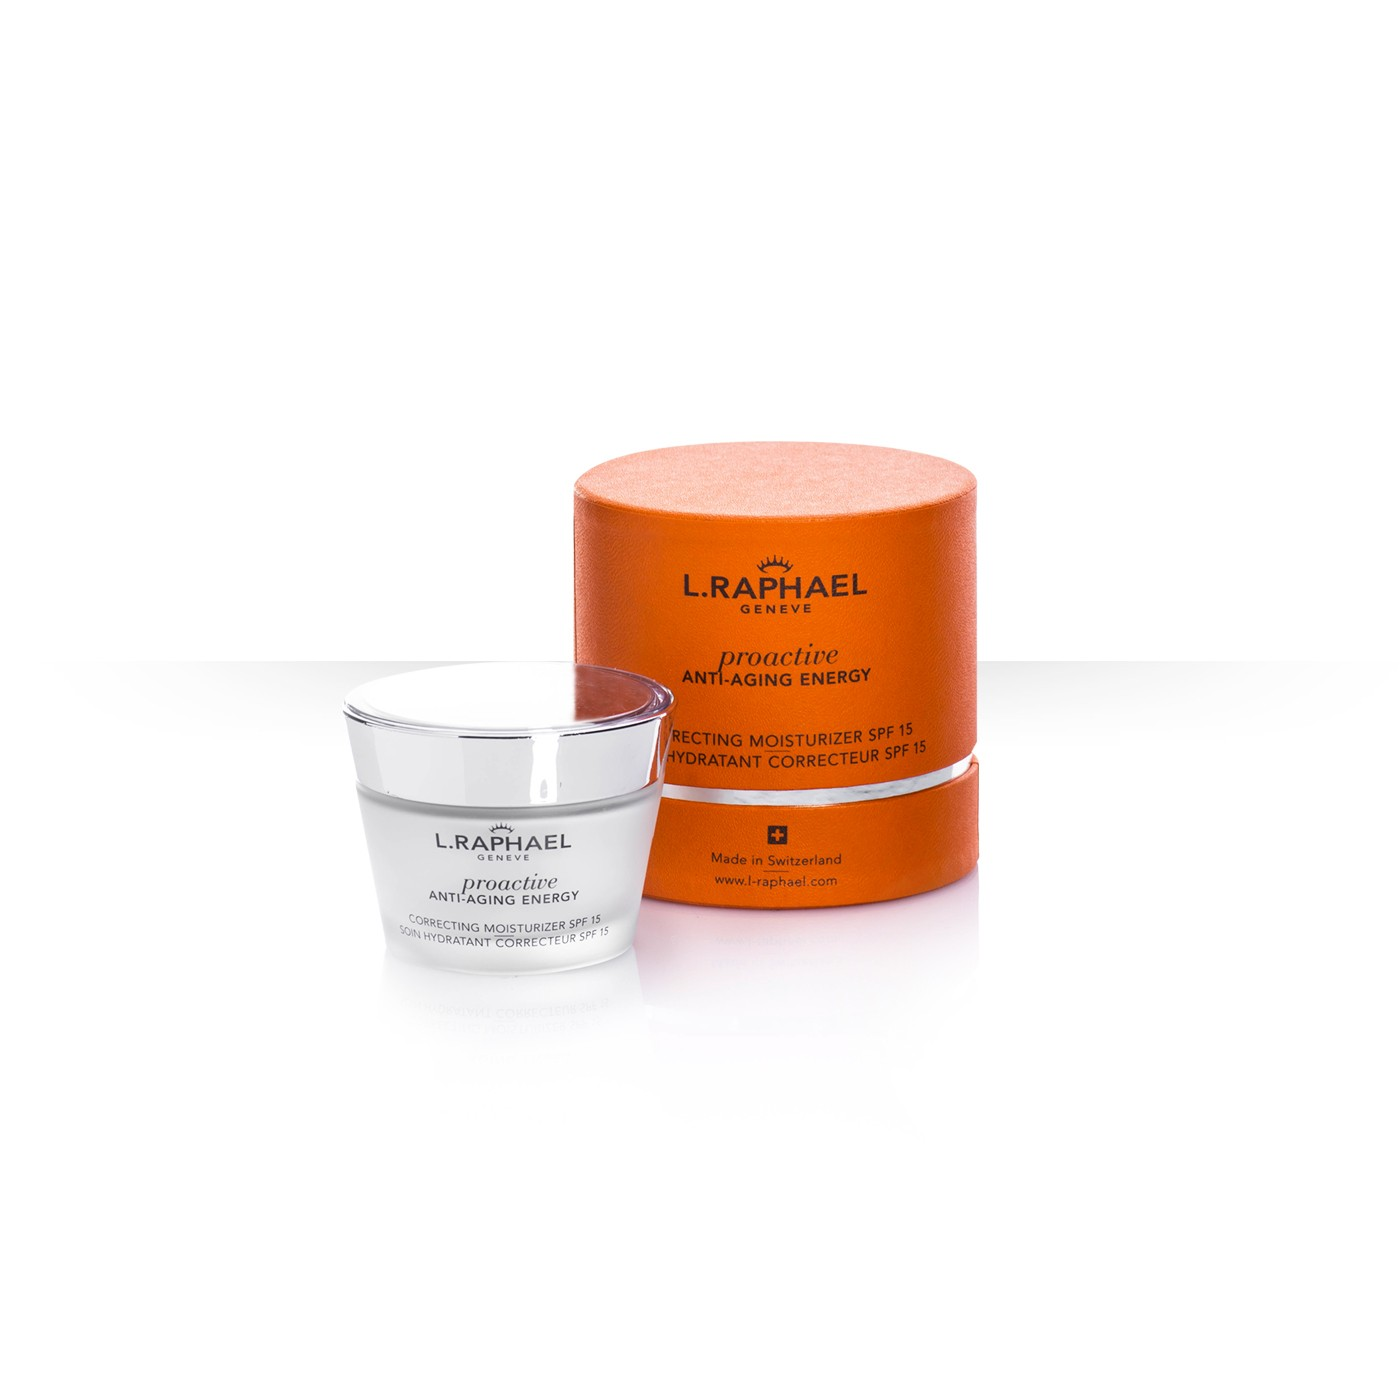 Correcting moisturizer SPF15 (Not available in the USA)